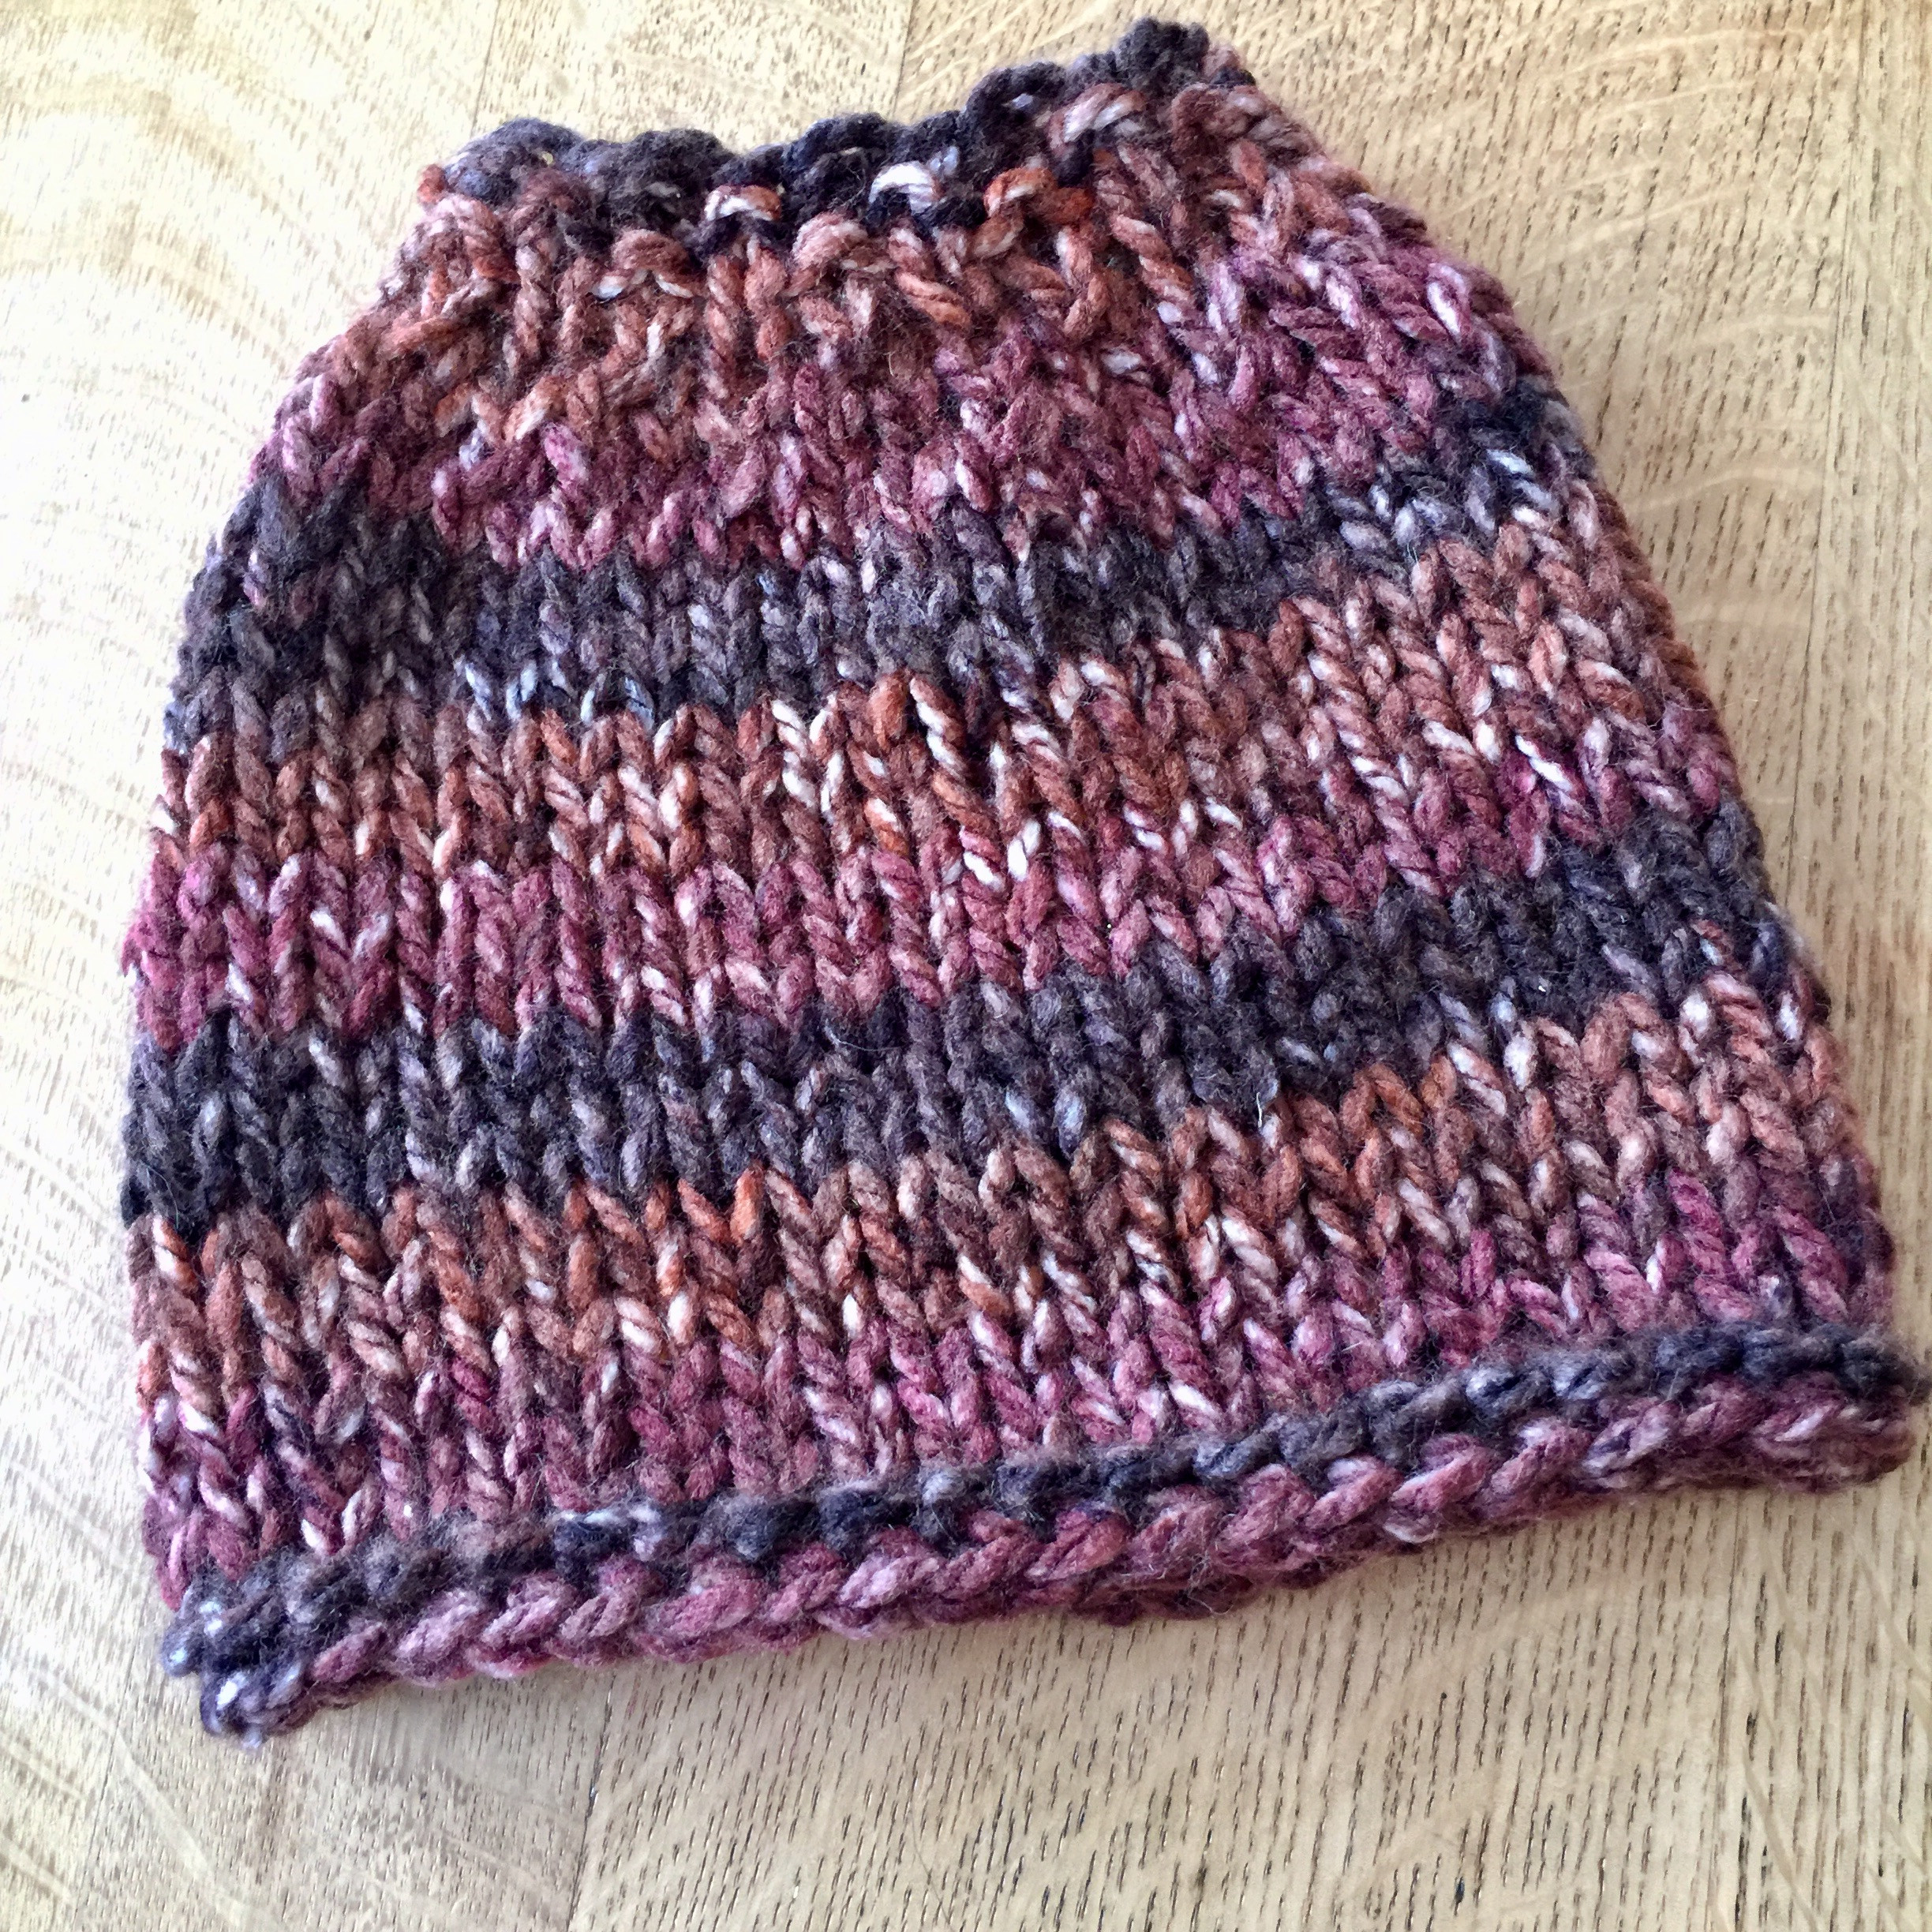 Awesome Chunky Knit Messy Bun Hat Knitted Messy Bun Hat Of Luxury 50 Models Knitted Messy Bun Hat